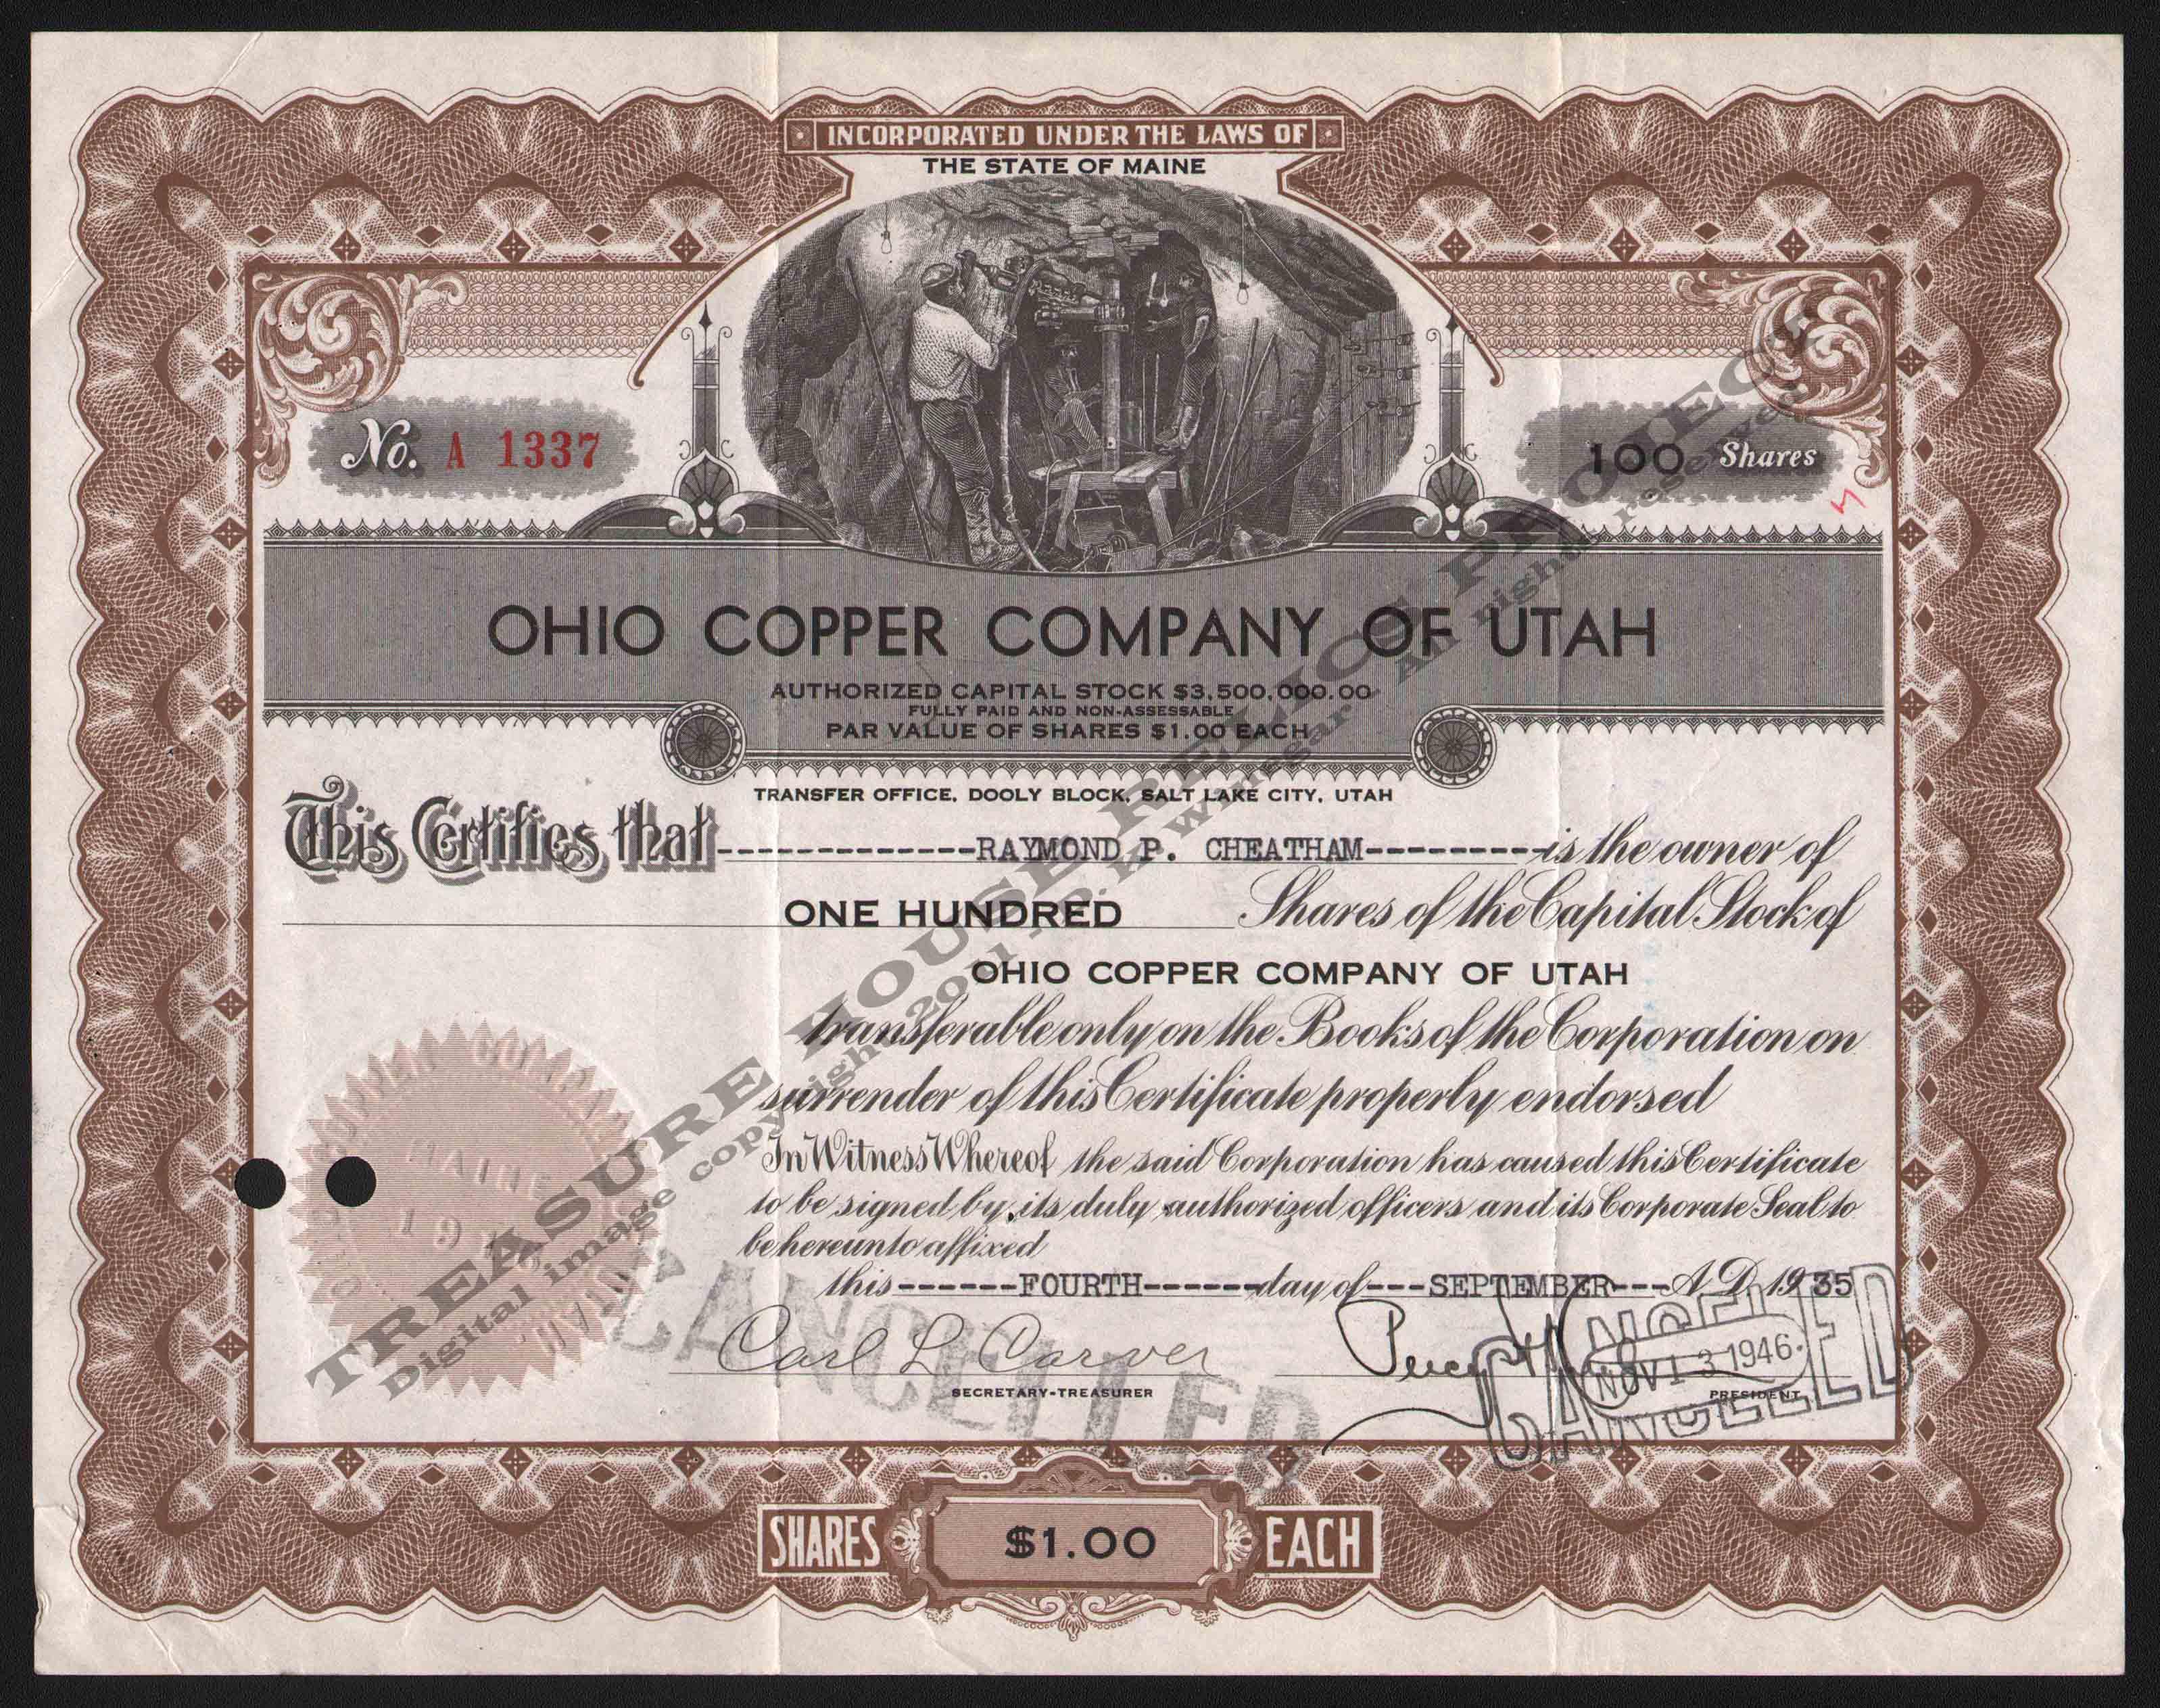 OHIO_COPPER_CO_OF_UTAH_A_1337_300_EMBOSS.jpg